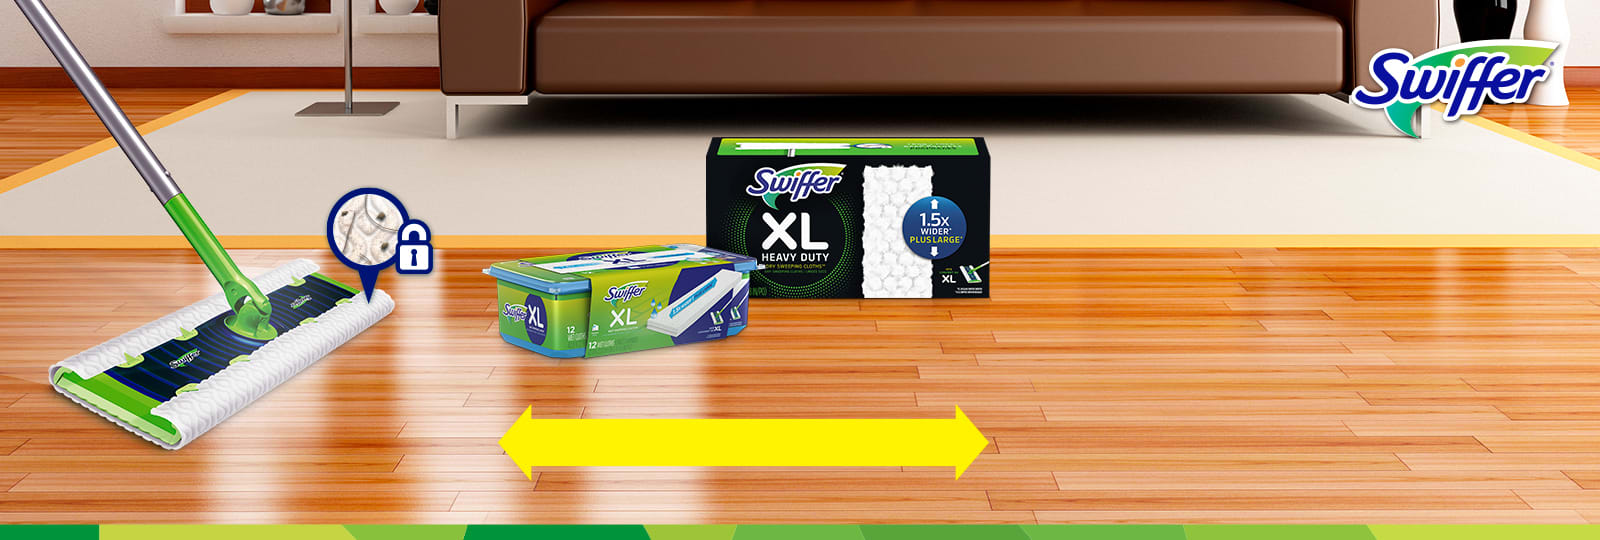 Swiffer Sweeper XL Doesn't let Messes Overstay Their Welcome